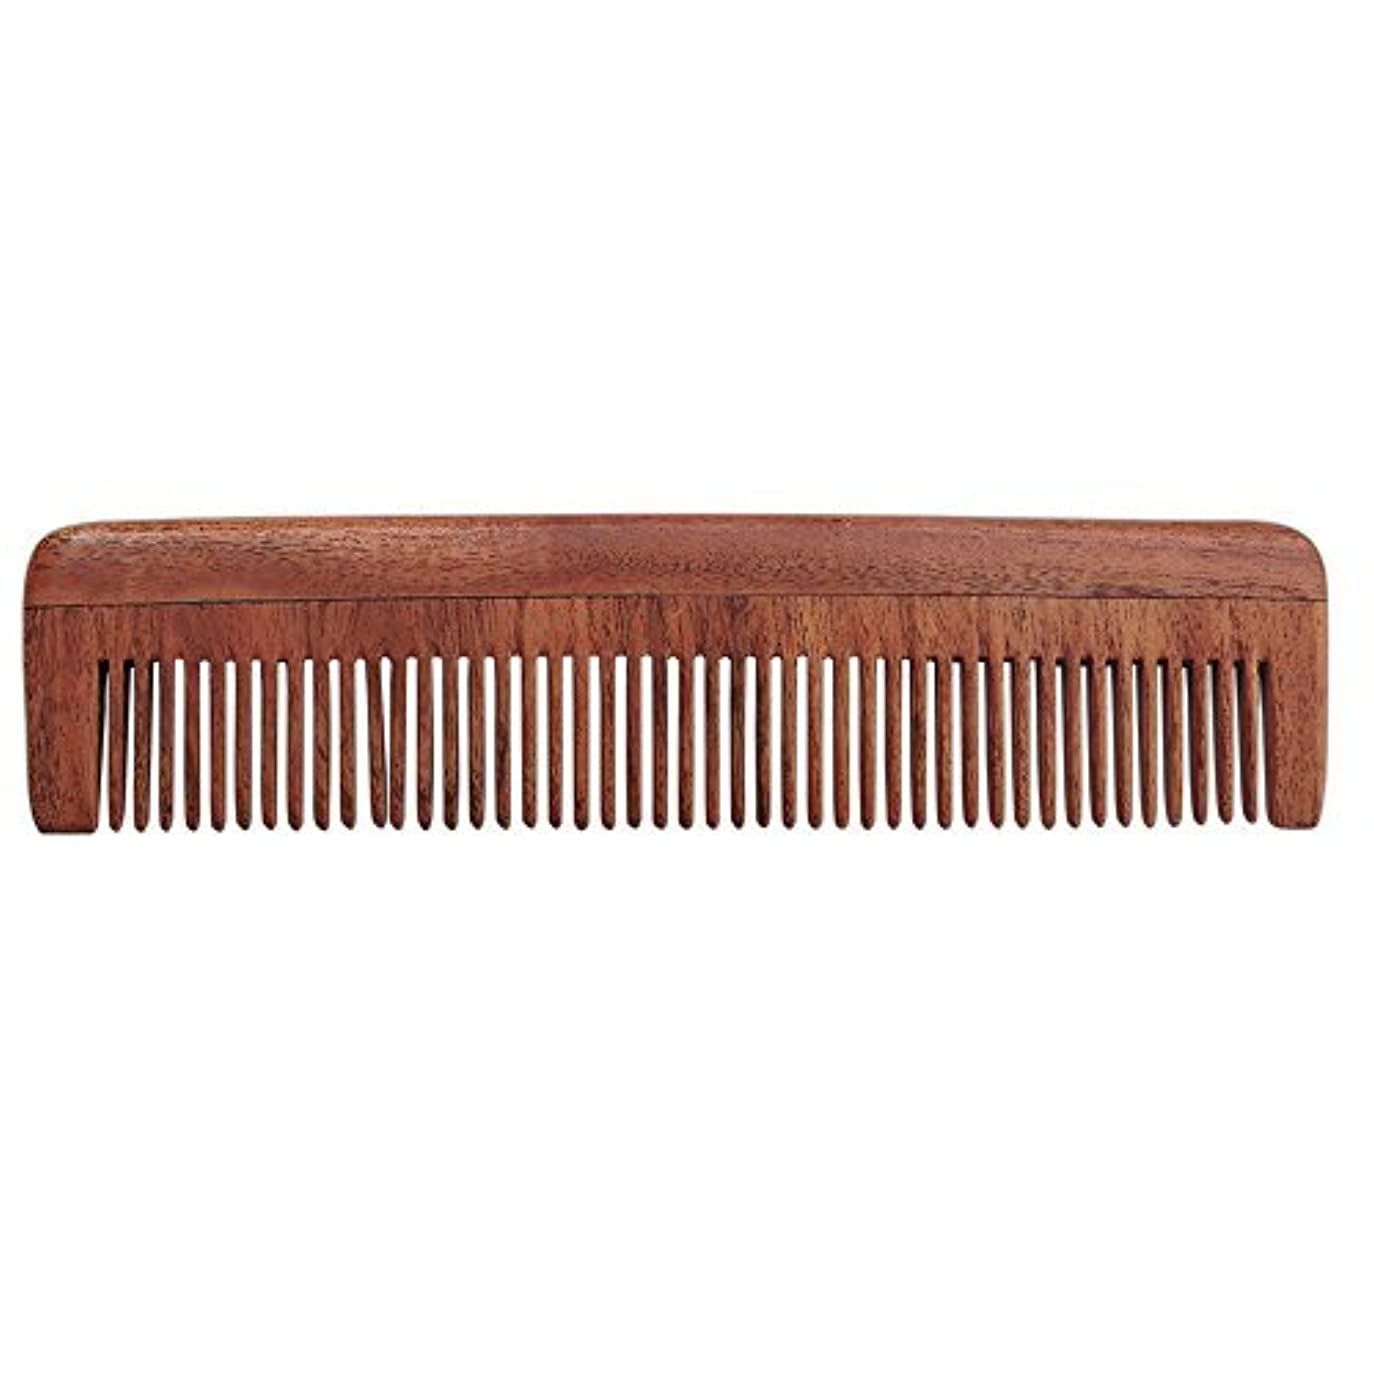 絞る過度に出血HealthGoodsIn - Pure Neem Wood Fine Tooth Comb for Fine Hair | Fine Tooth Neem Comb | Organic and Natural for...